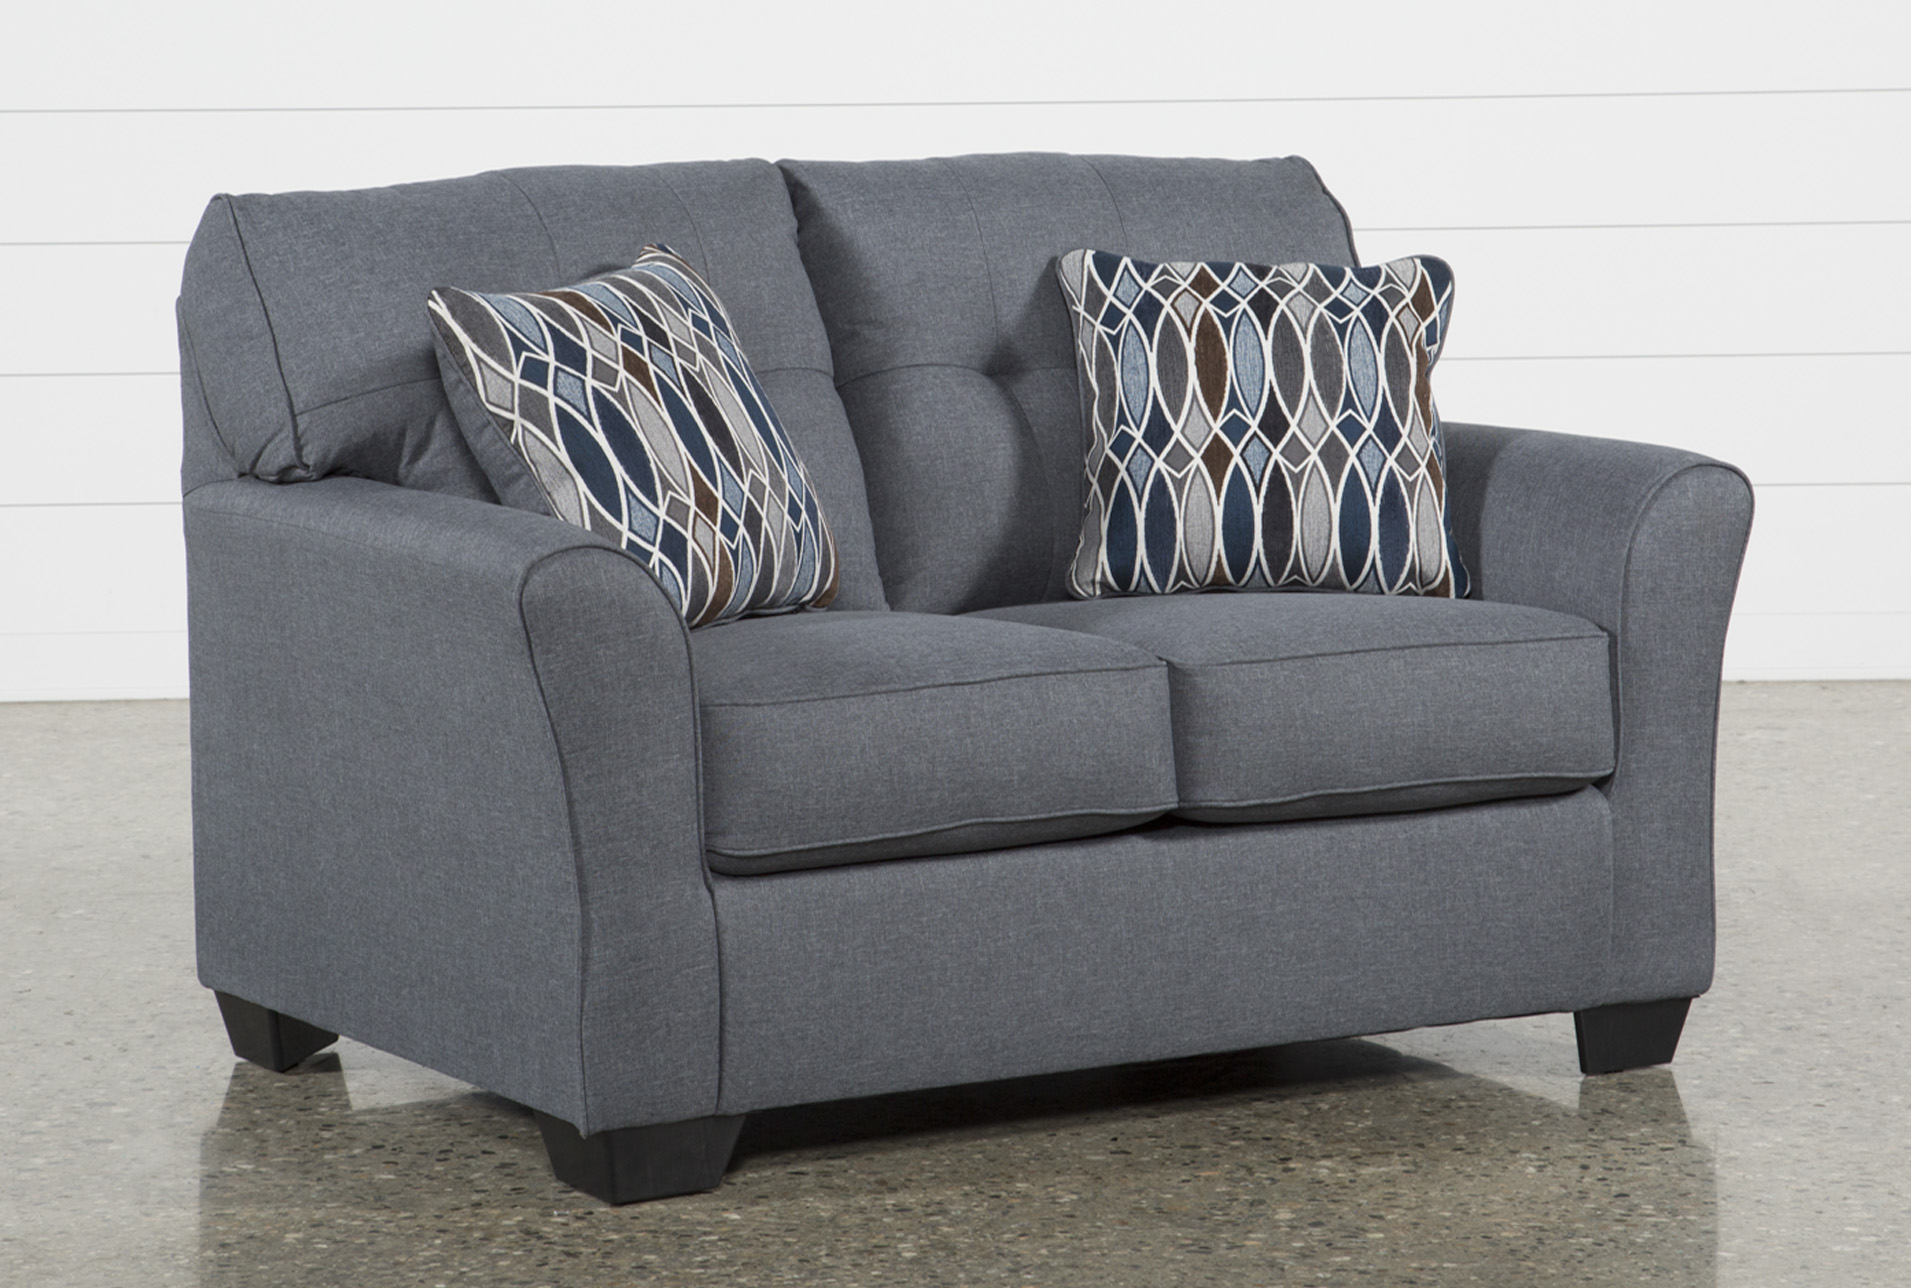 Incroyable Chilkoot Gunmetal Loveseat   360